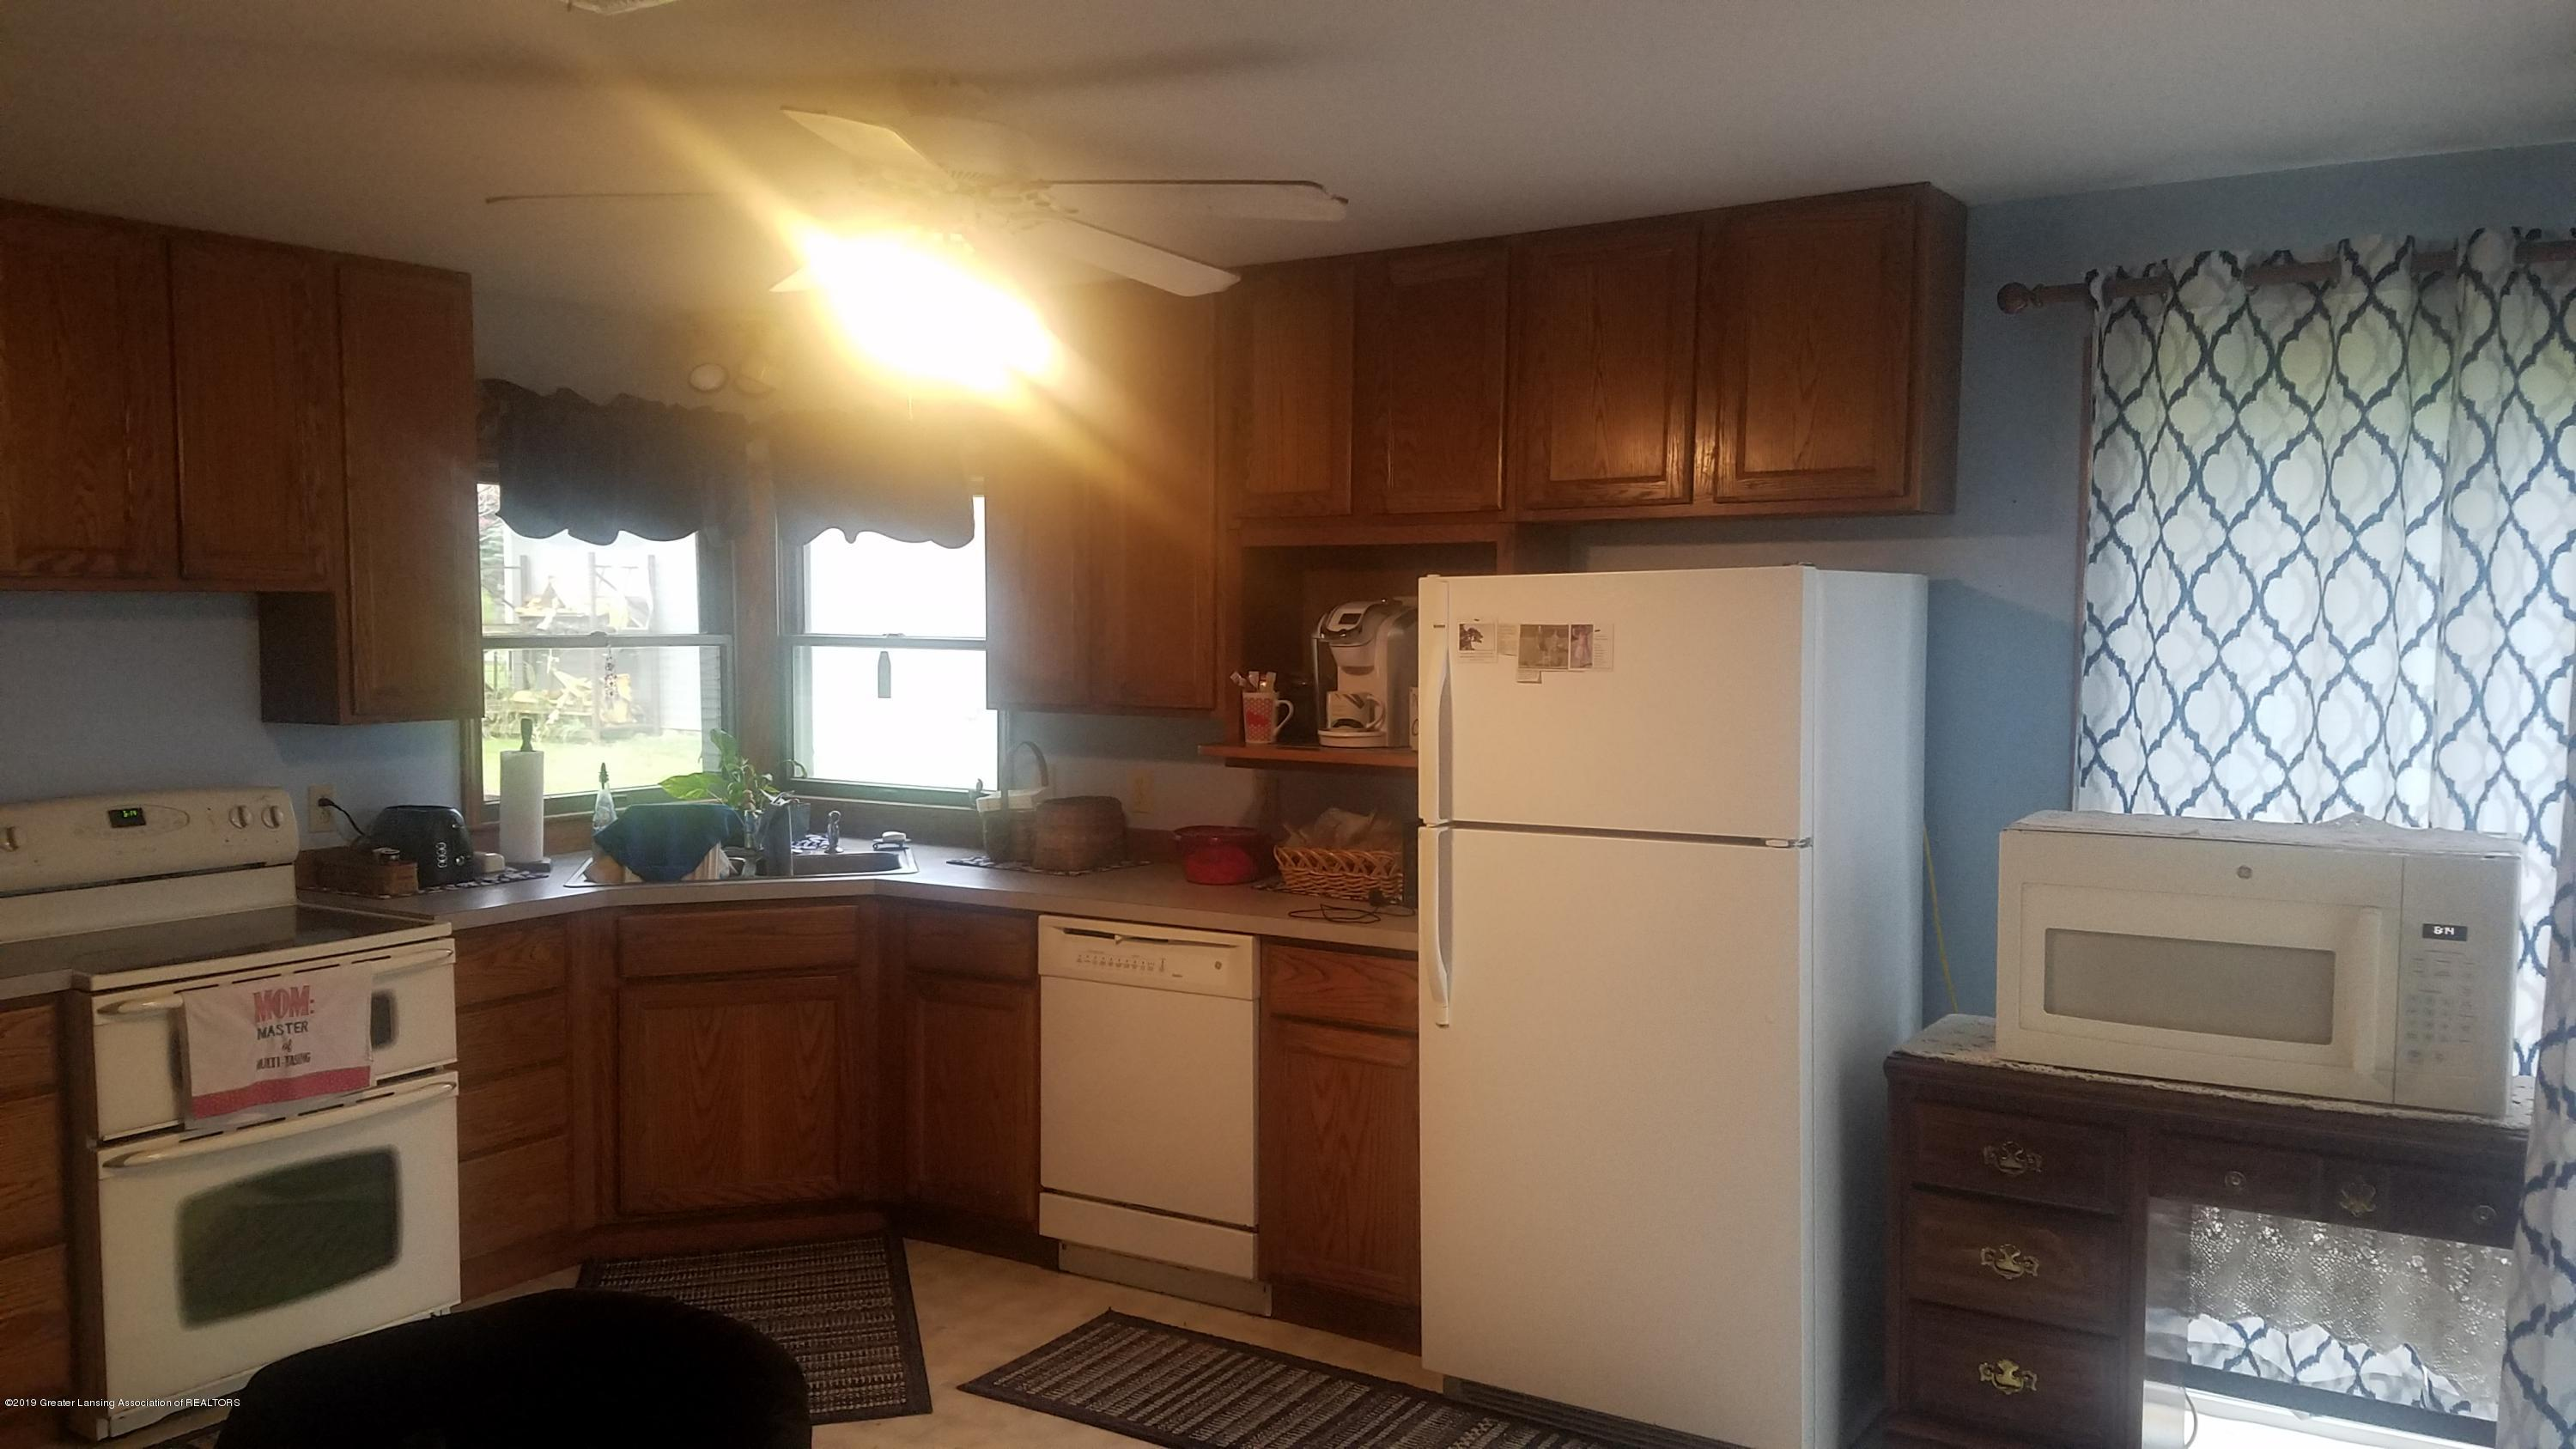 9642 Marshall Rd - KITCHEN - 12